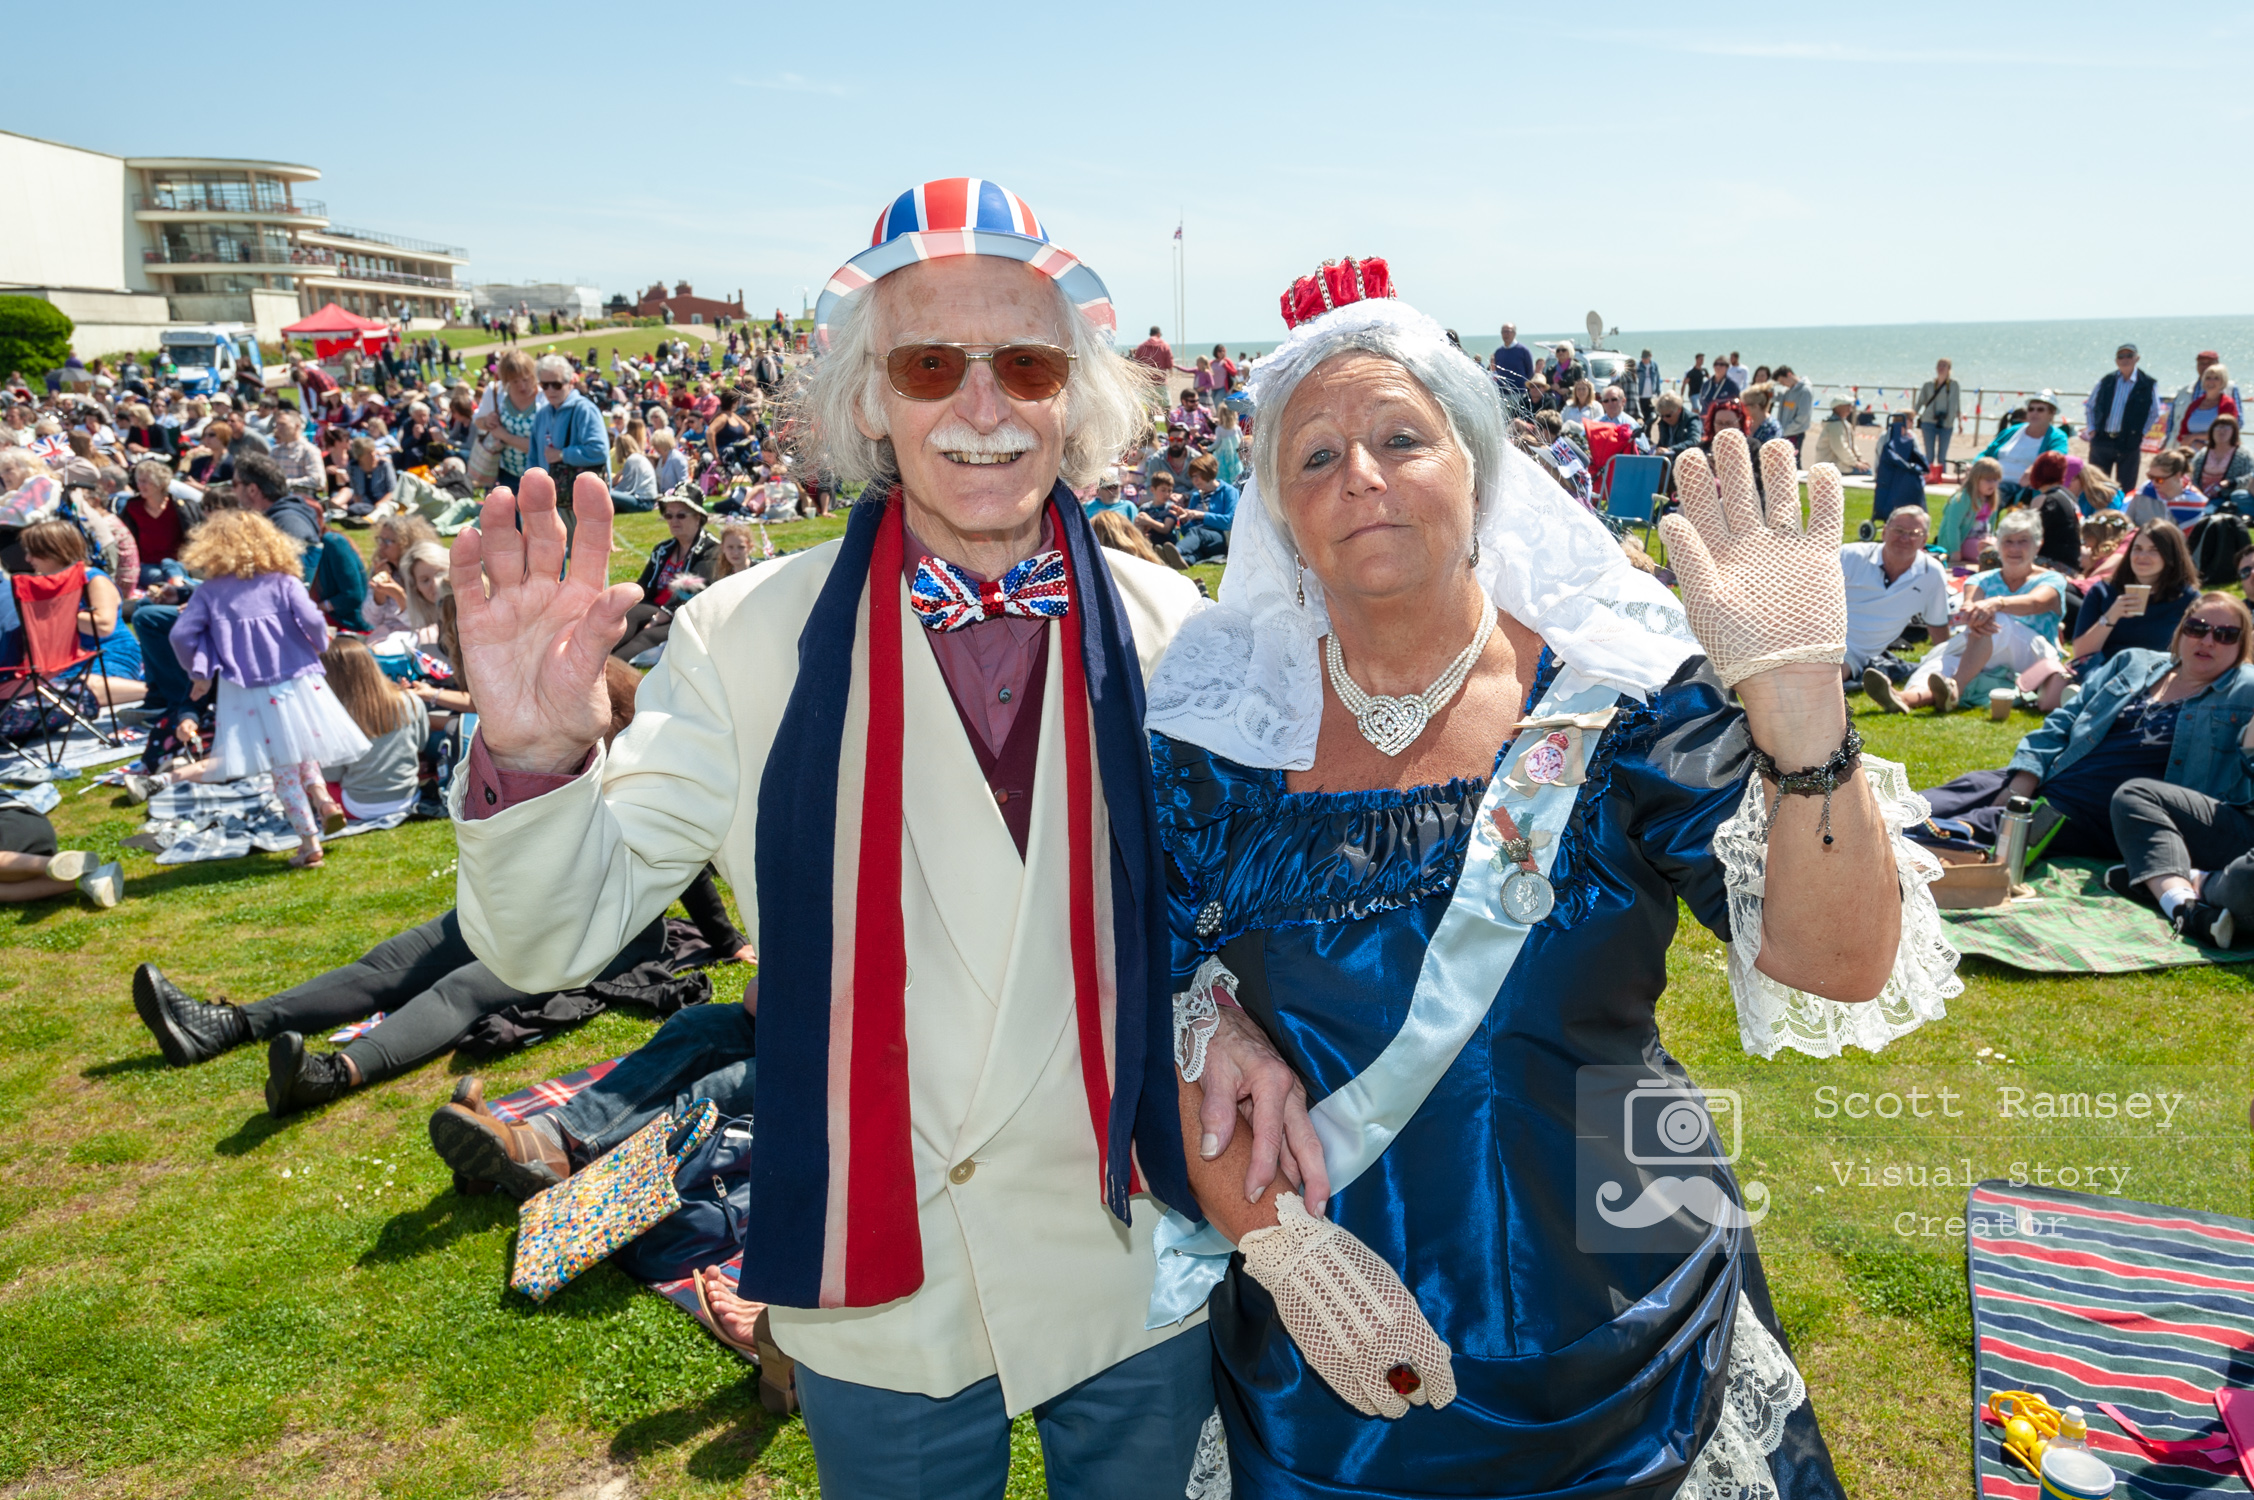 East-Sussex-Editorial-Photographer-Bexhill-Royal-Wedding-Celebrations-©-Scott-Ramsey-www.scottramsey.co.uk-006.jpg